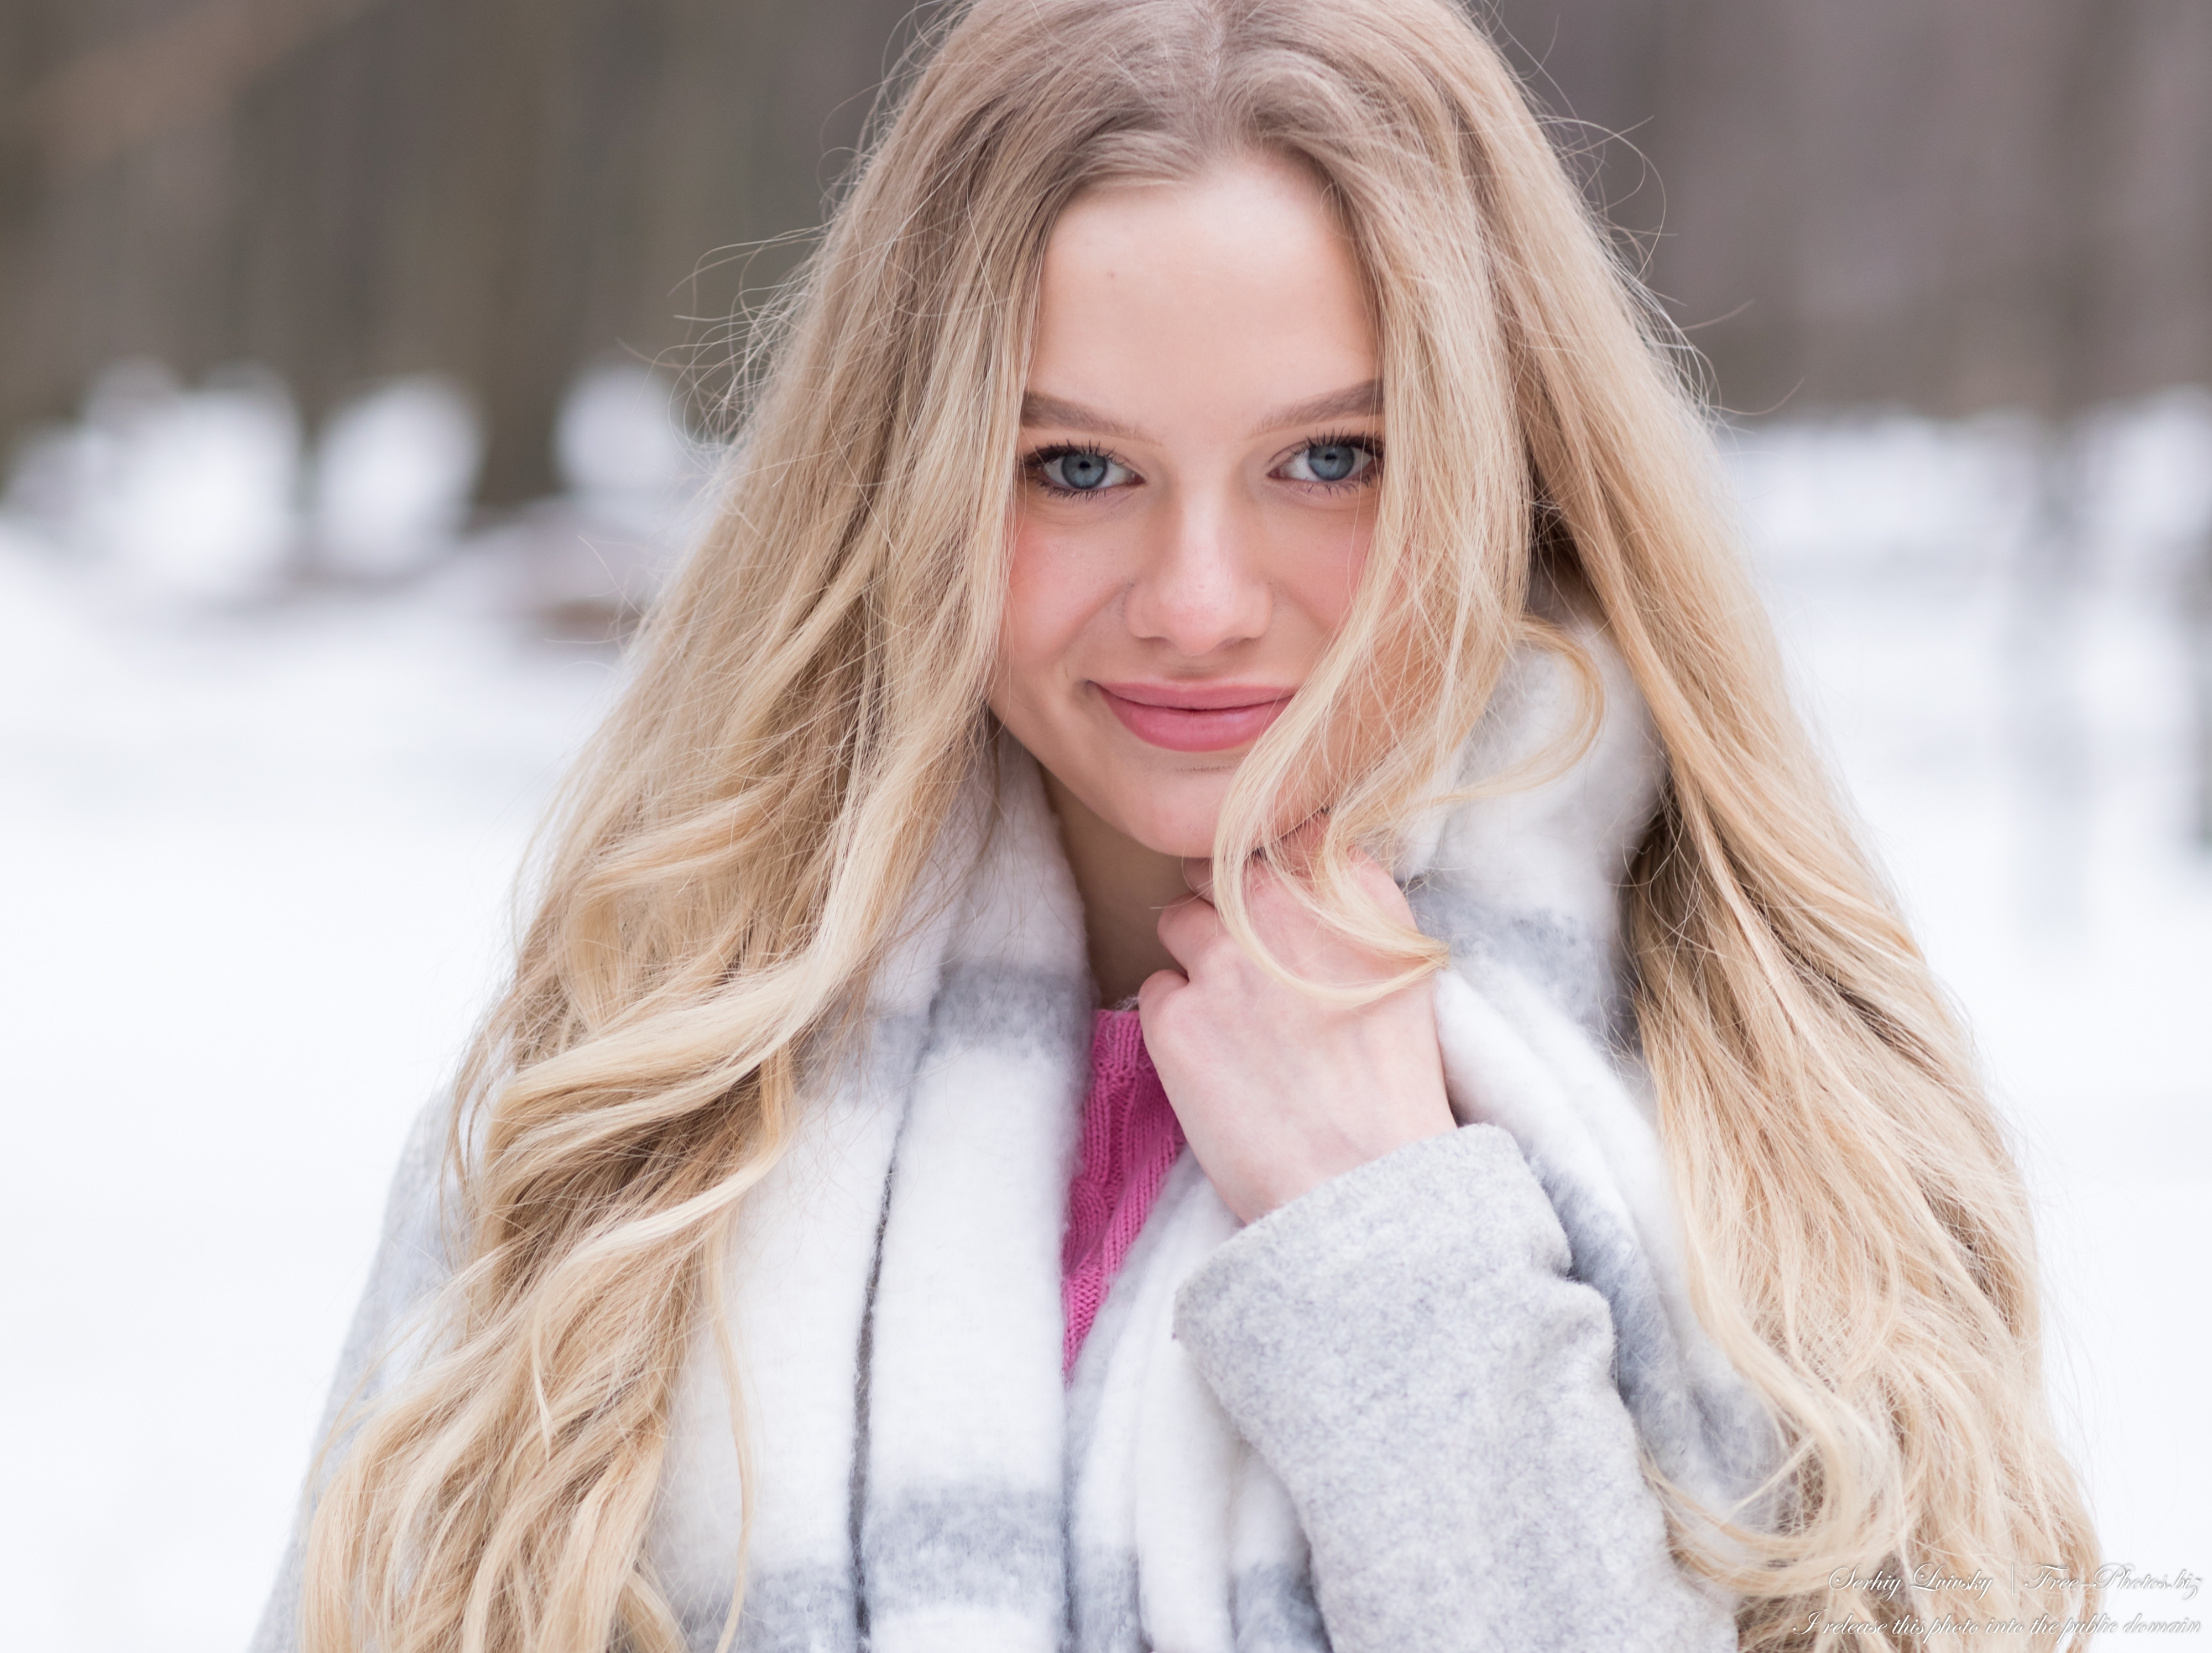 oksana_a_19-year-old_natural_blonde_girl_photographed_by_serhiy_lvivsky_in_march_2021_33